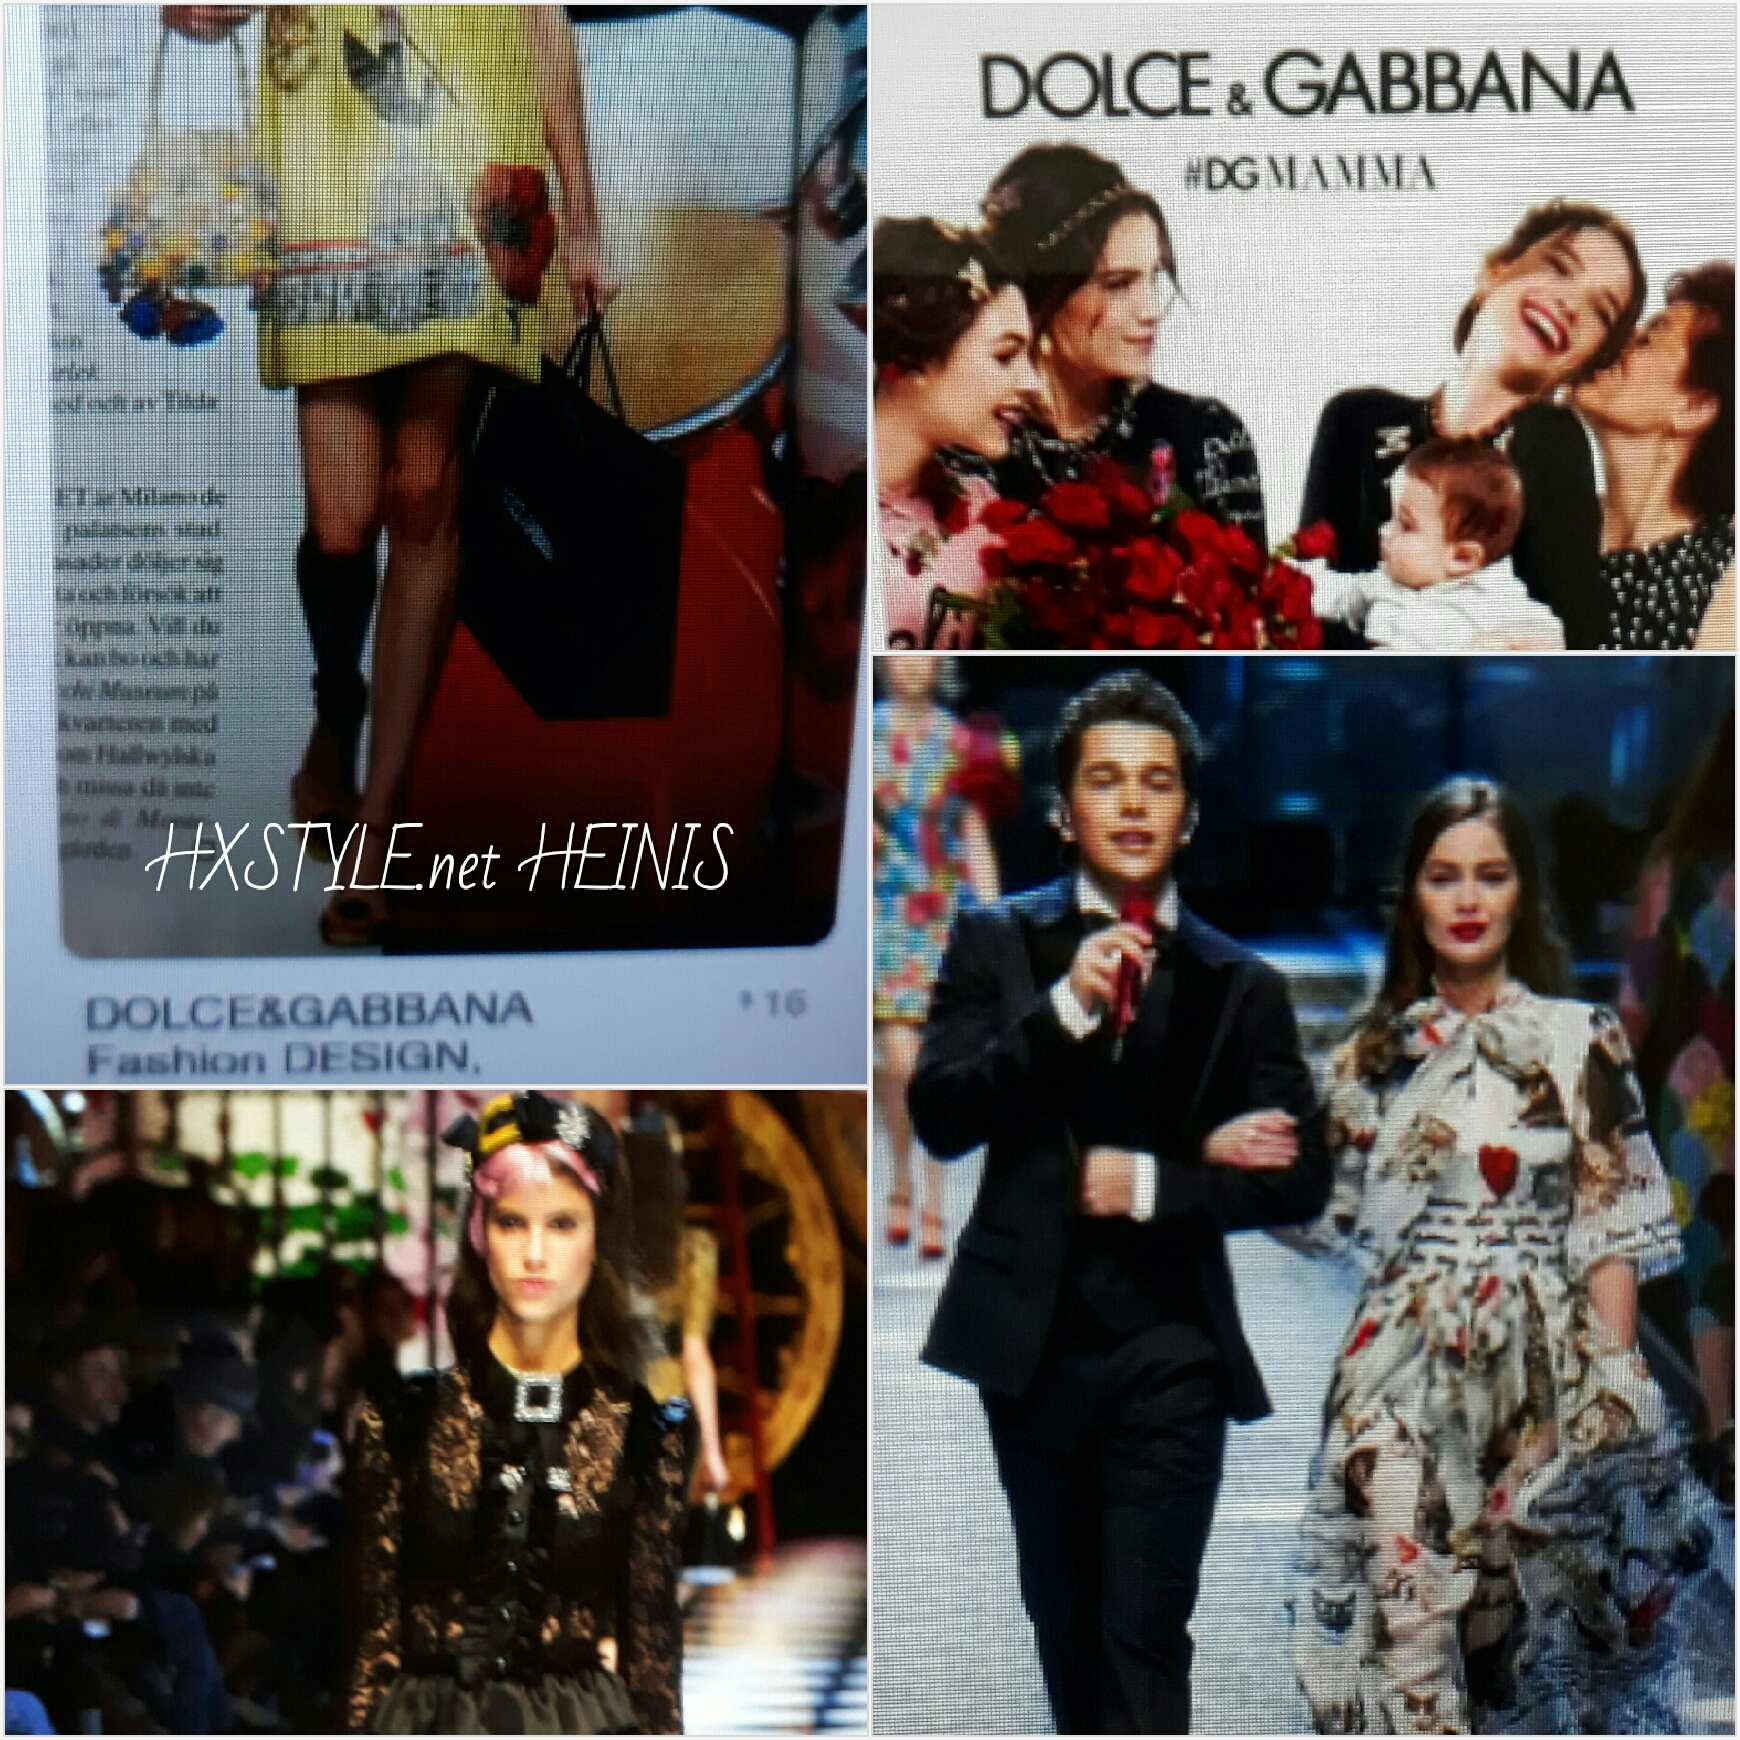 VOGUE NEWS&TRENDS. FASHION DESIG DOLCE&GABBANA Milano, ITALY…COLLECTIONS 2016 – 2017. HXSTYLE.net HEINIS Favourite 15.1.2018